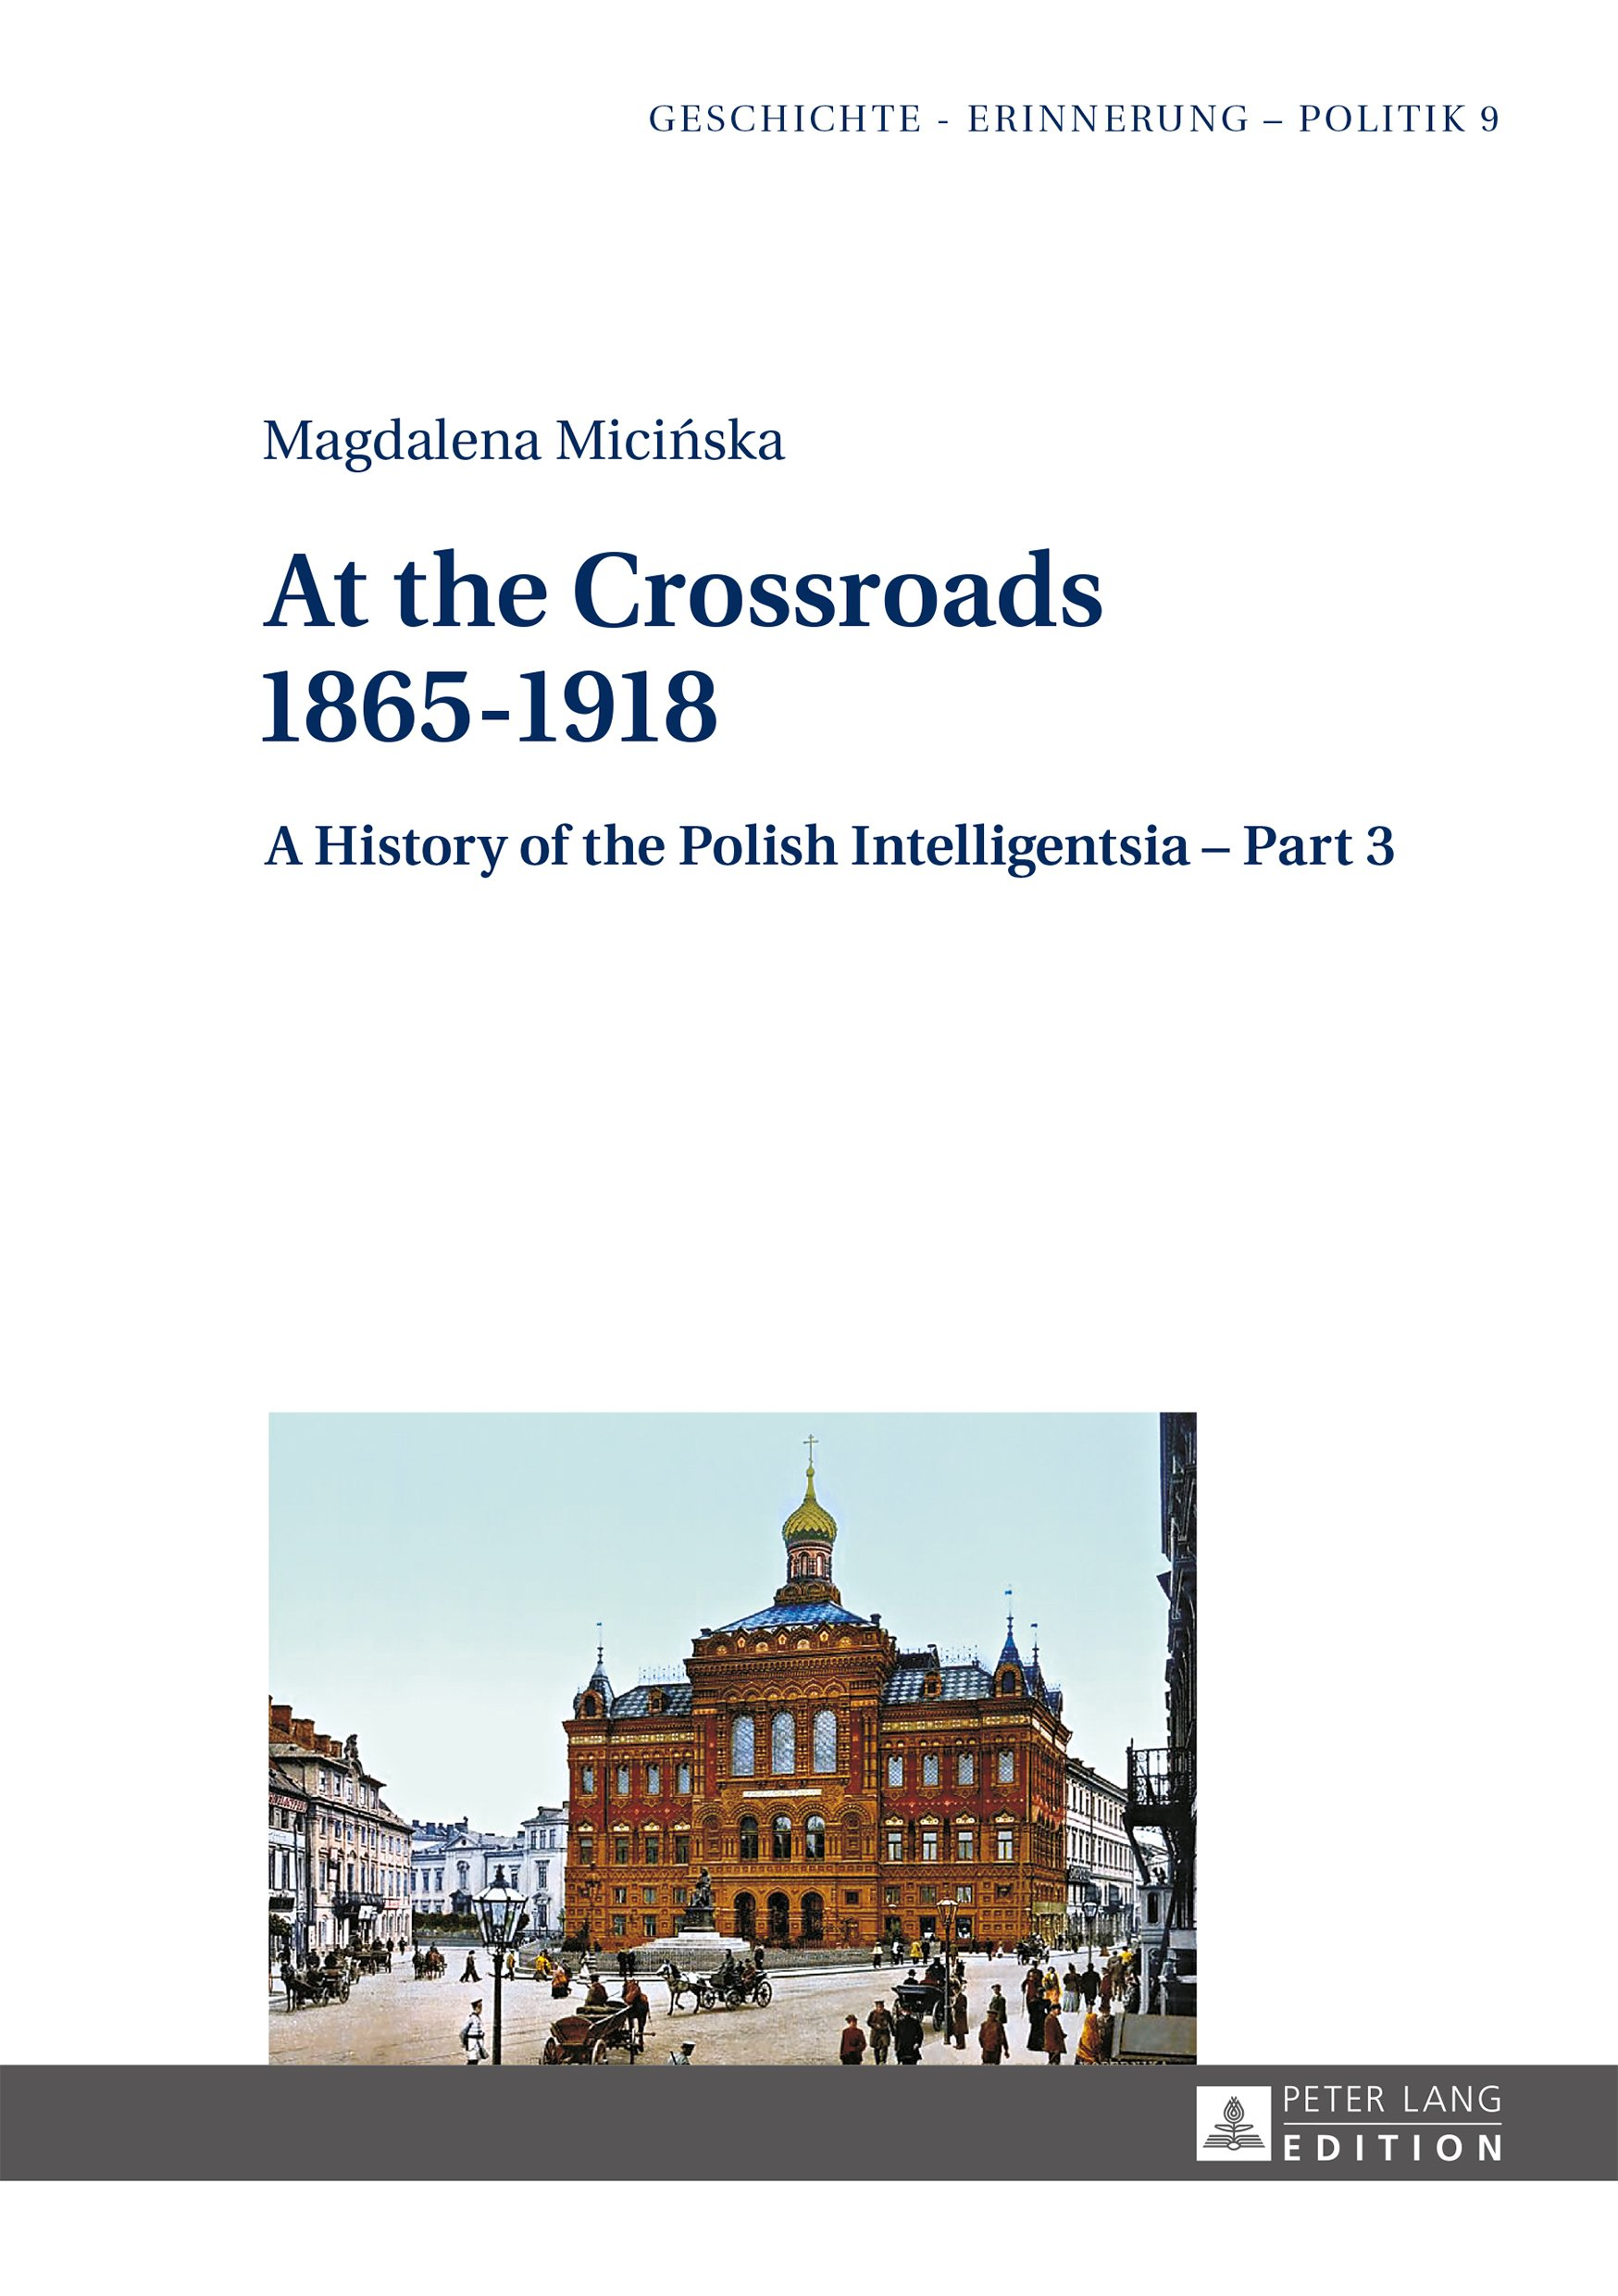 At the Crossroads: 18651918: A History of the Polish Intelligentsia Part 3, Edited by Jerzy Jedlicki (Geschichte – Erinnerung – Politik. Studies in History, Memory and Politics Book 9)